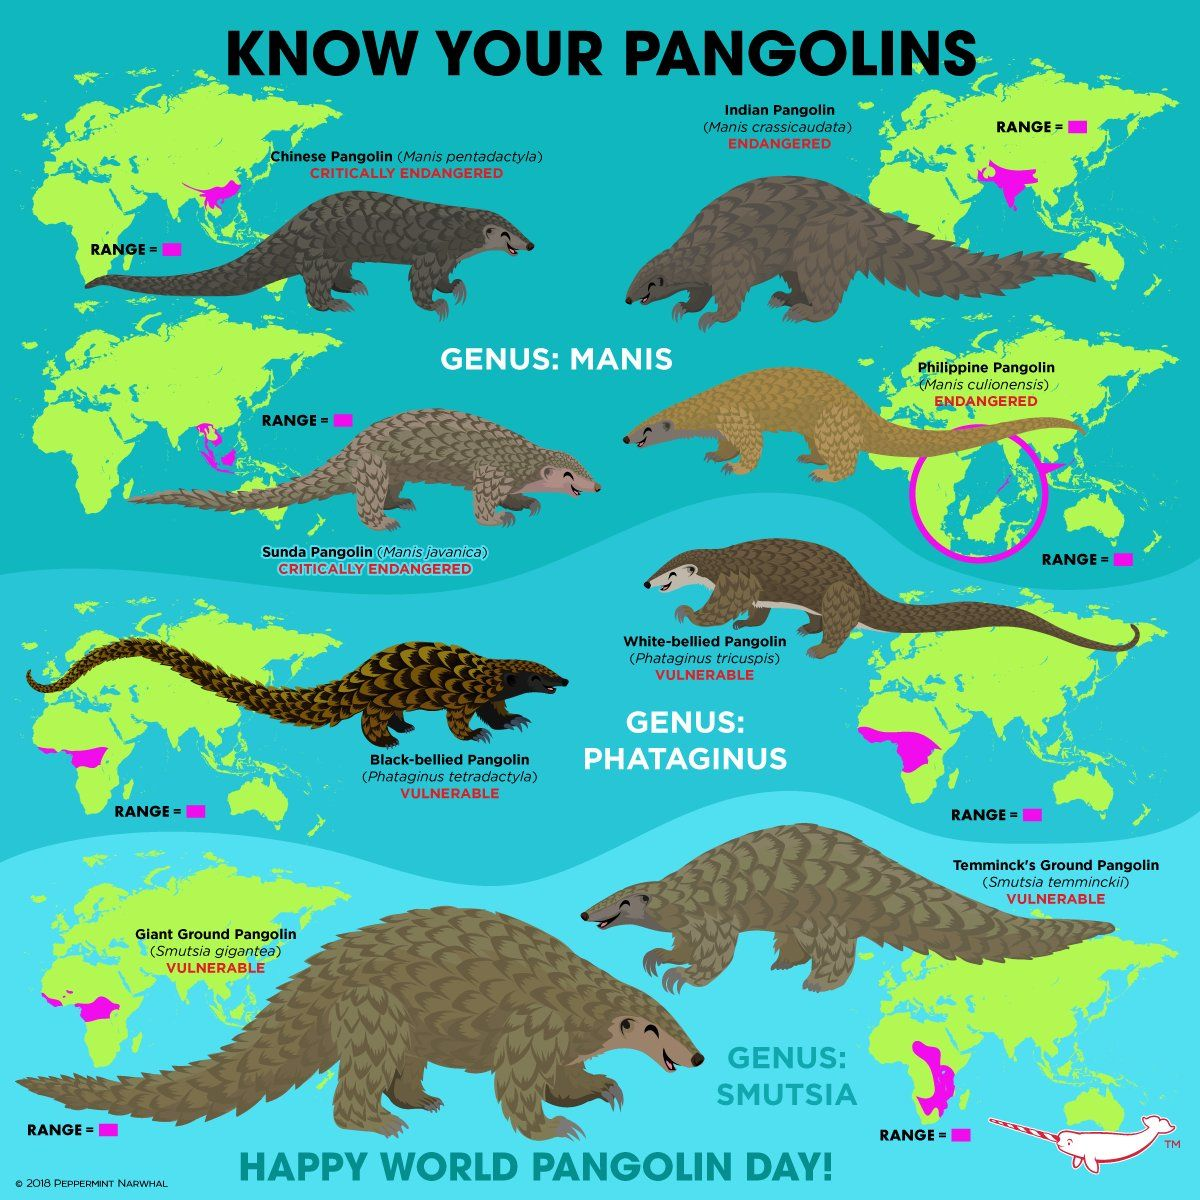 know your pangolins info